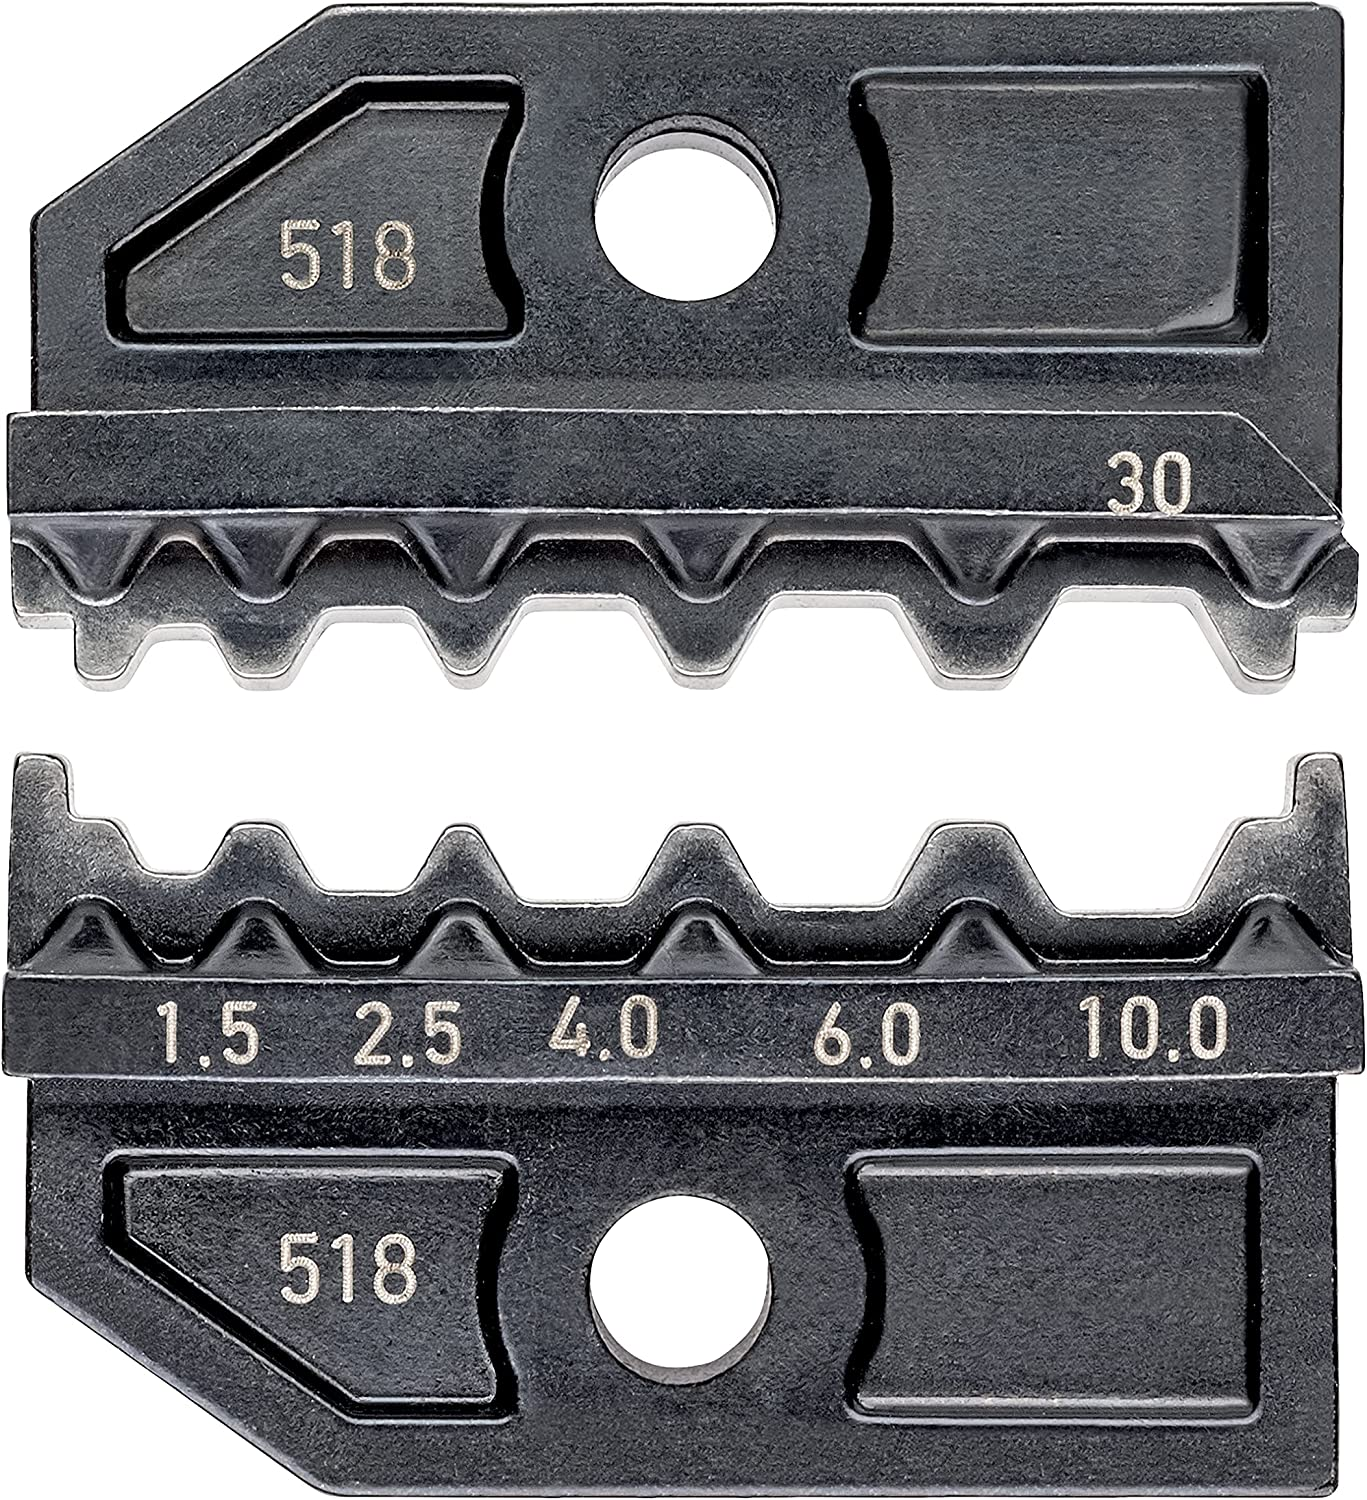 Knipex 97 49 30 1 Super Special SALE held Max 78% OFF 5-4mm butt non-insulated con for Crimping Dies